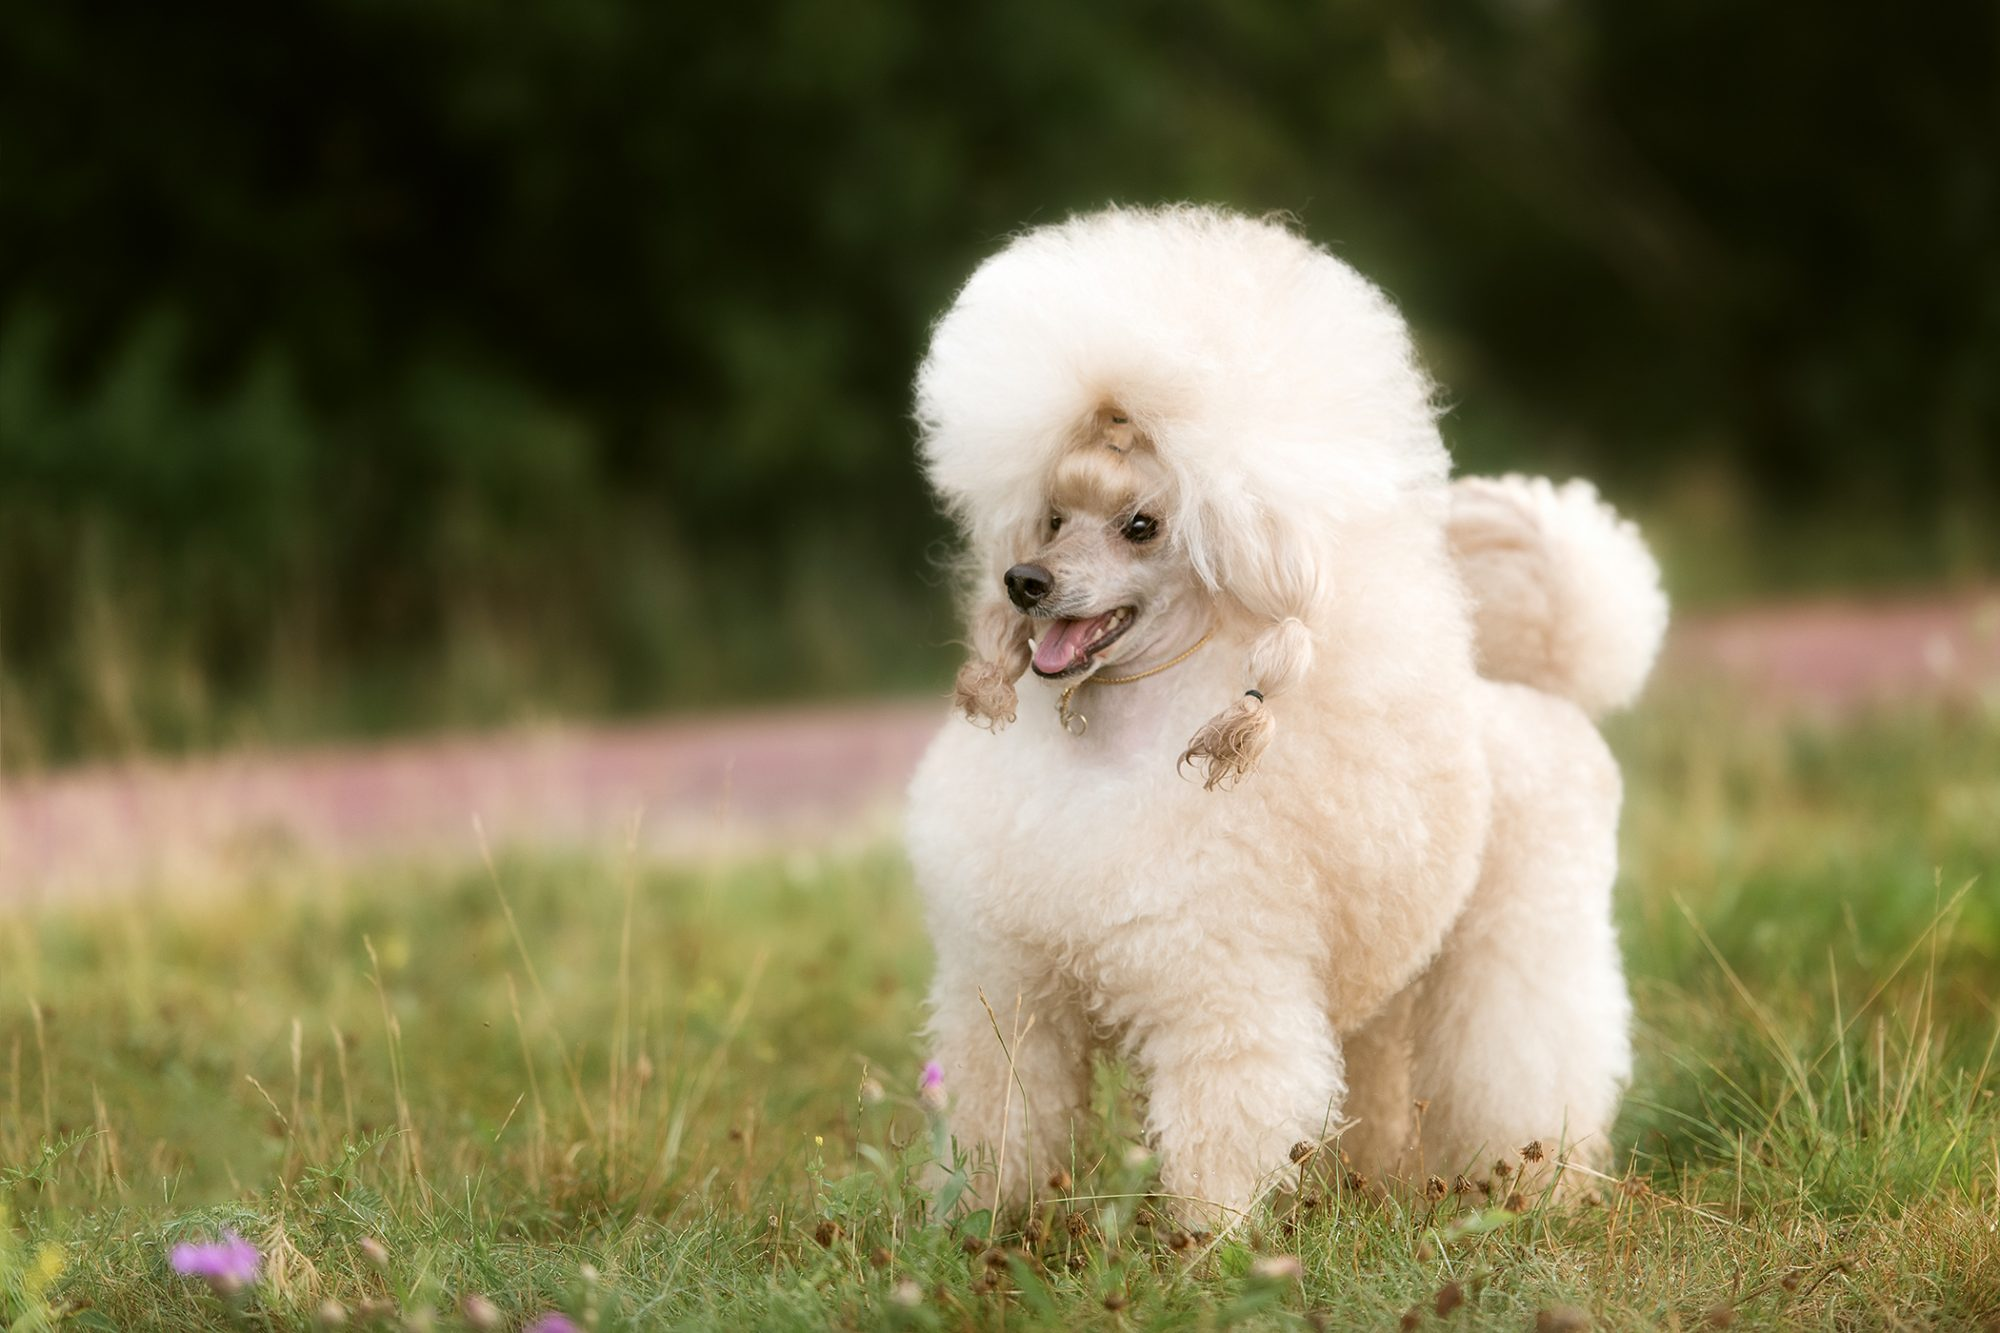 White, fluffy toy poodle stands in field